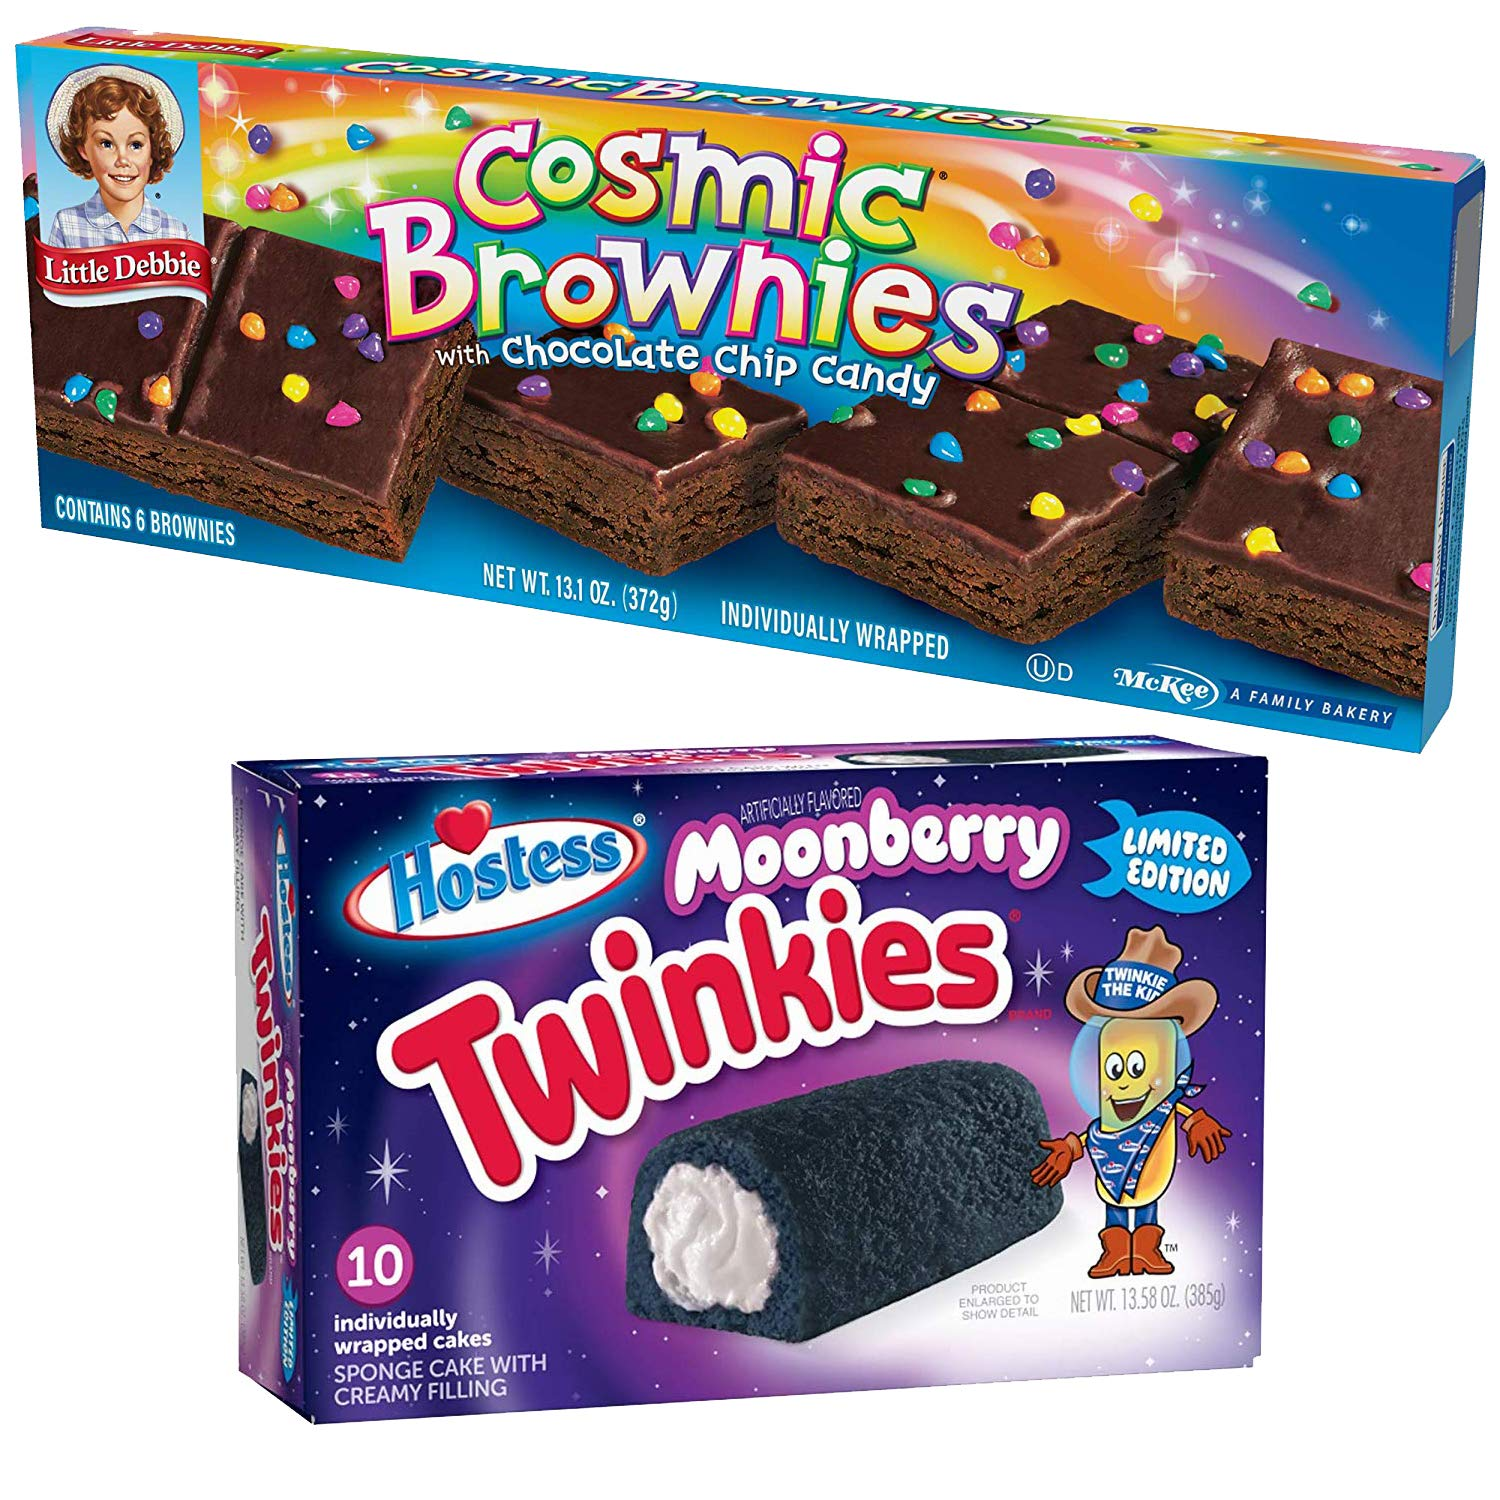 Space Flavors Limited Edition Snack Cakes Hostess Twinkies Moonberry & Little Debbie Cosmic Brownies with Chocolate Chip Candy by Hostess